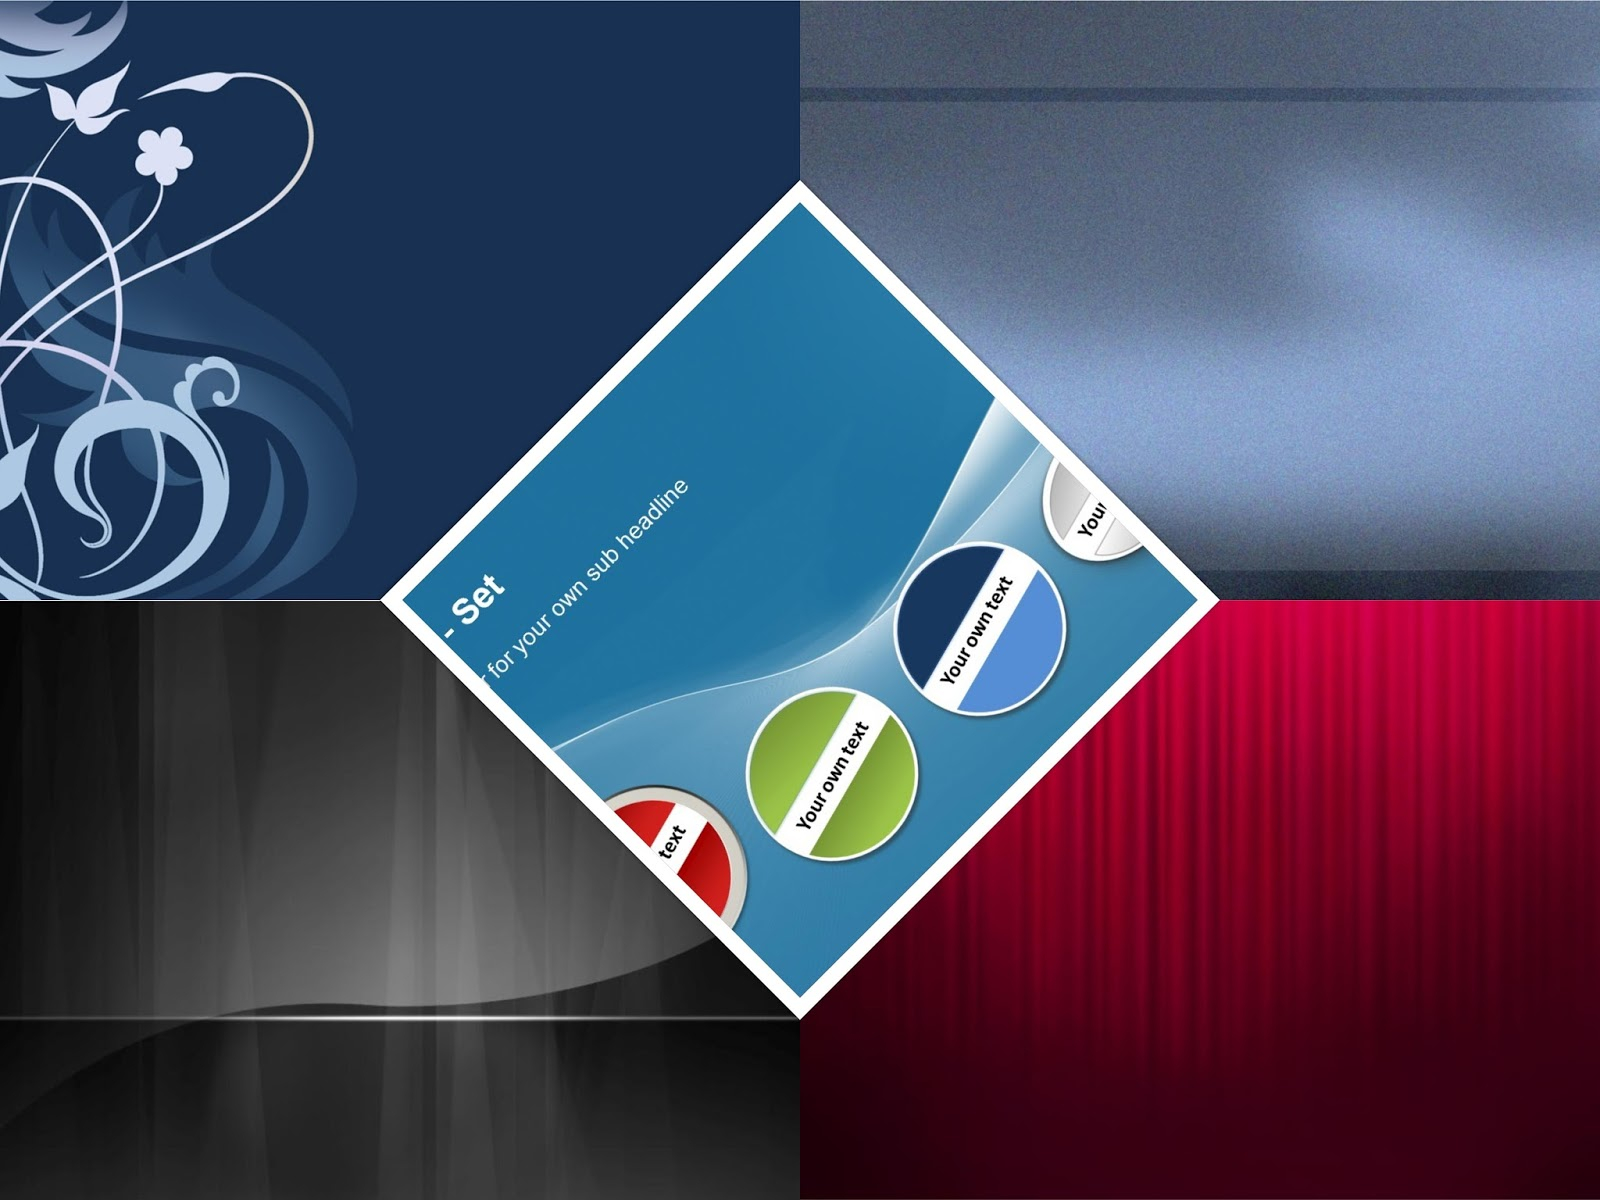 32 powerpoint background for free download ppt themes 32 powerpoint background for free download toneelgroepblik Images